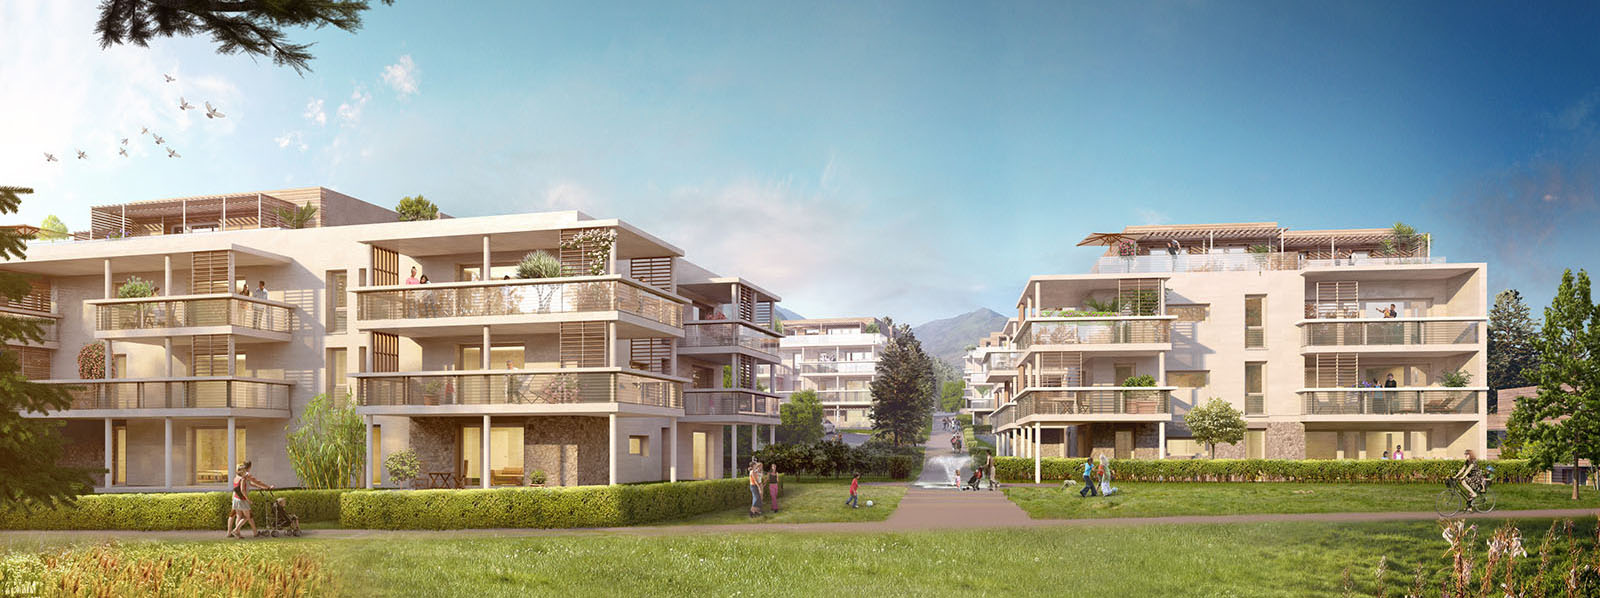 Image LOGEMENTS A GEX par Archigroup et Exfolio